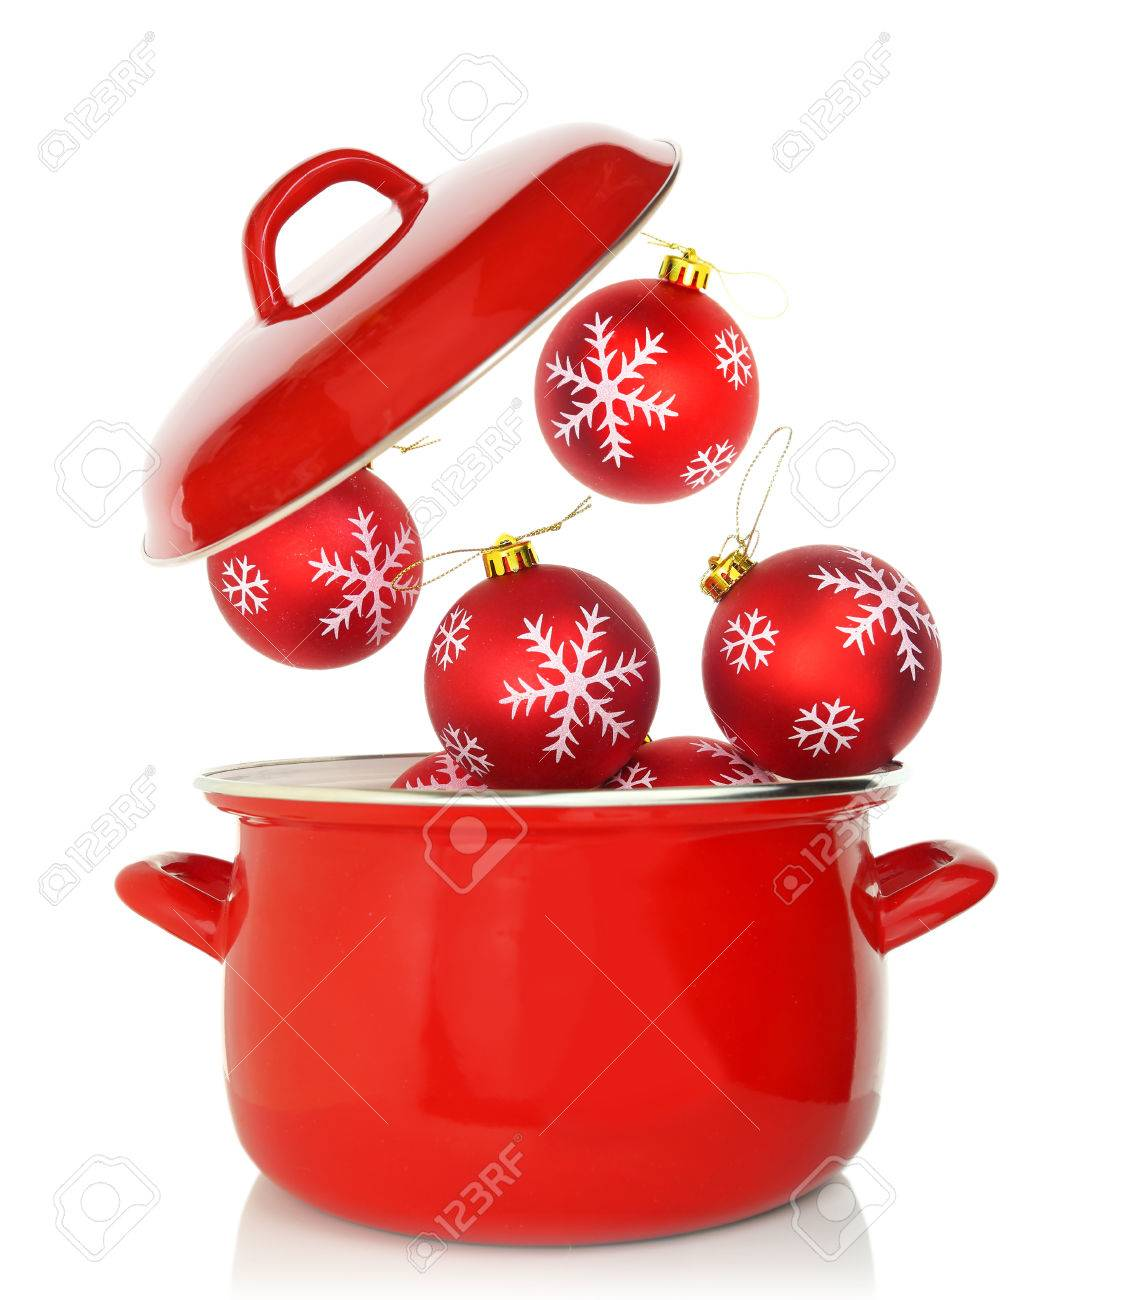 cooking christmas ornaments